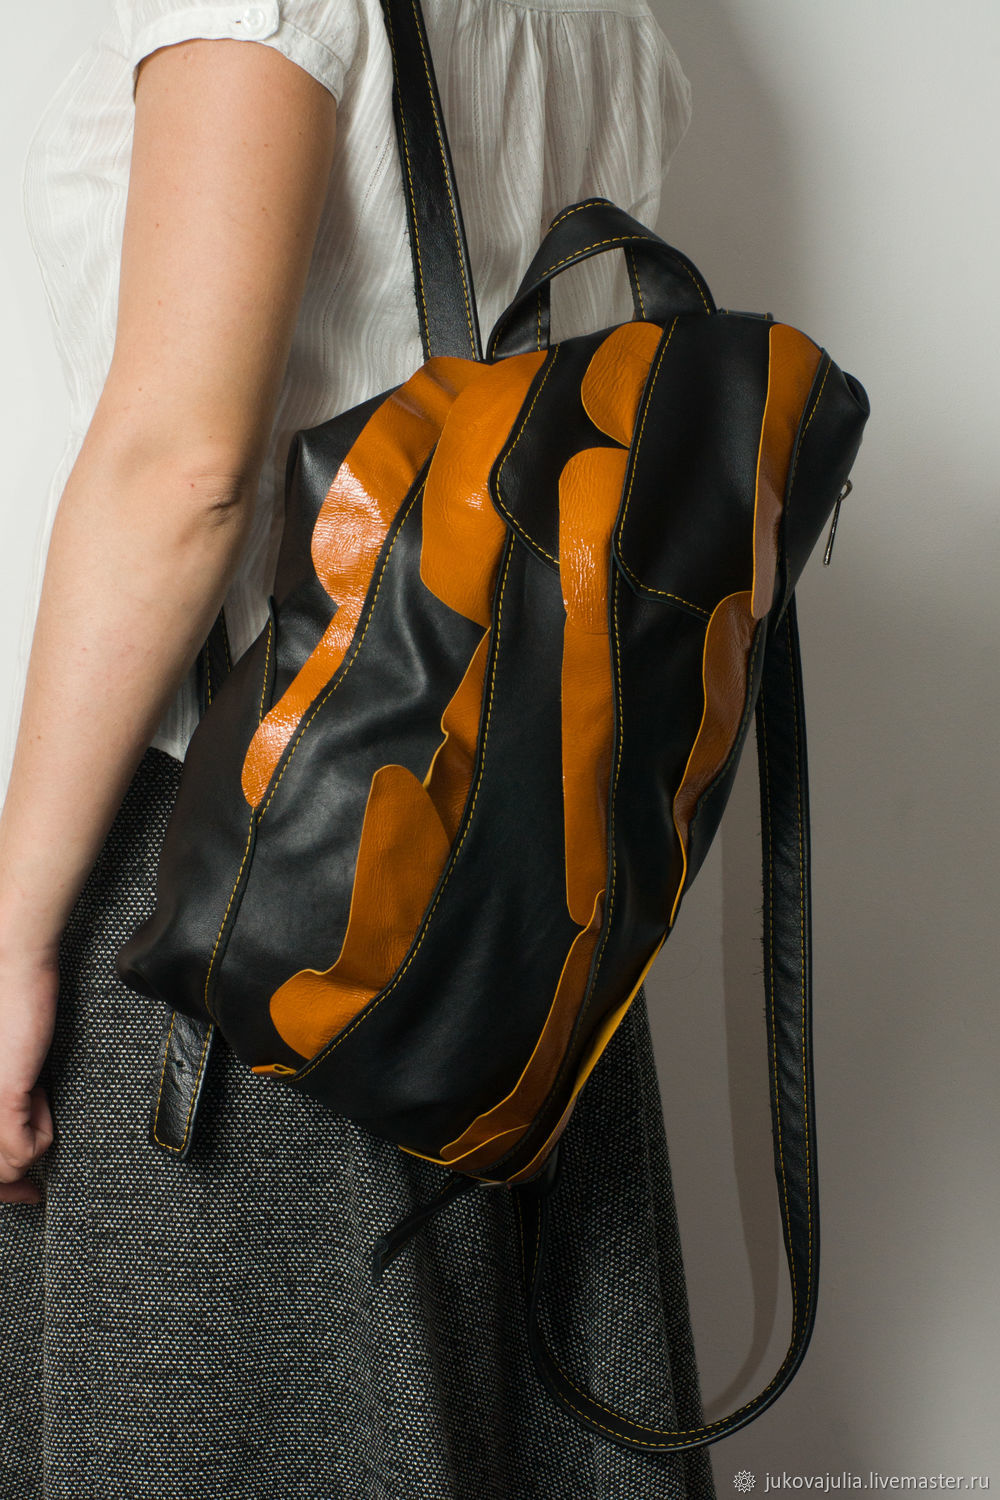 Patchwork backpack, genuine leather, black and orange, Persimmon slices, Backpacks, Stavropol,  Фото №1